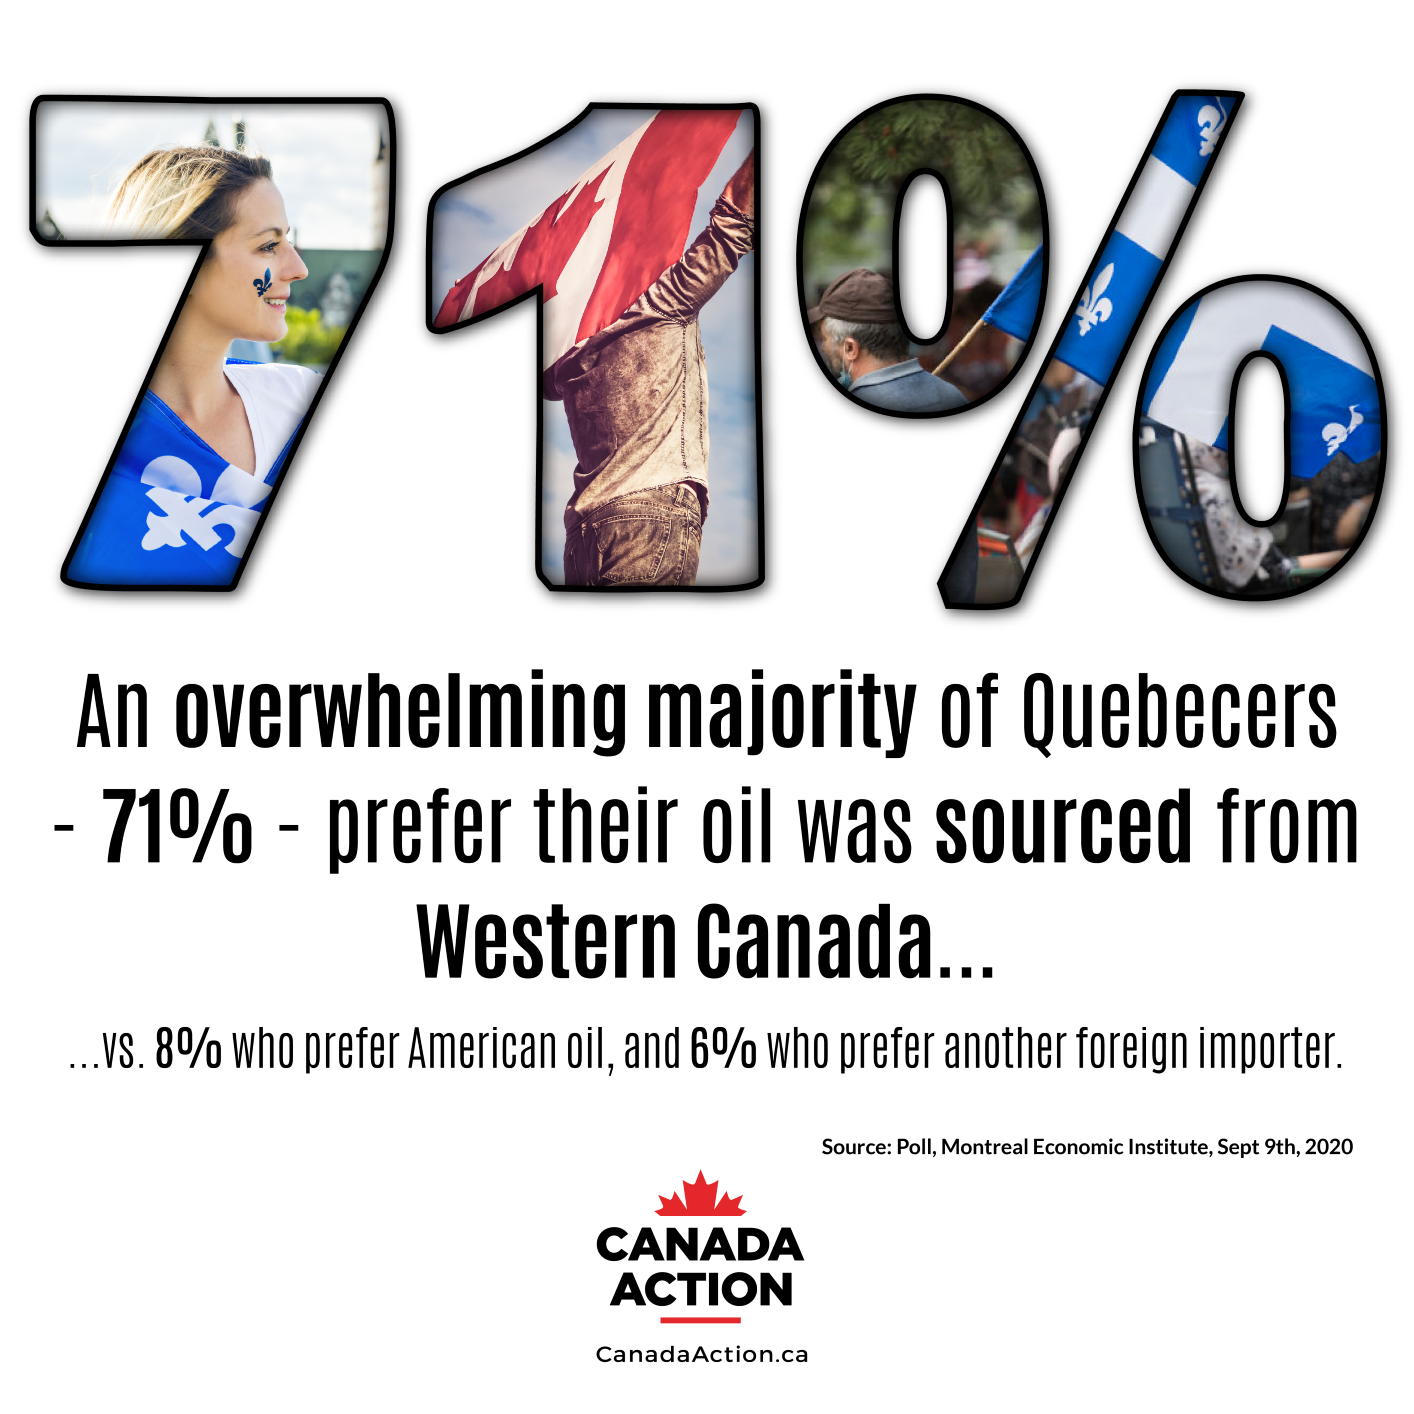 71% of Quebecers Prefer Sourcing Oil from Western Canada - Montreal Economic Institute